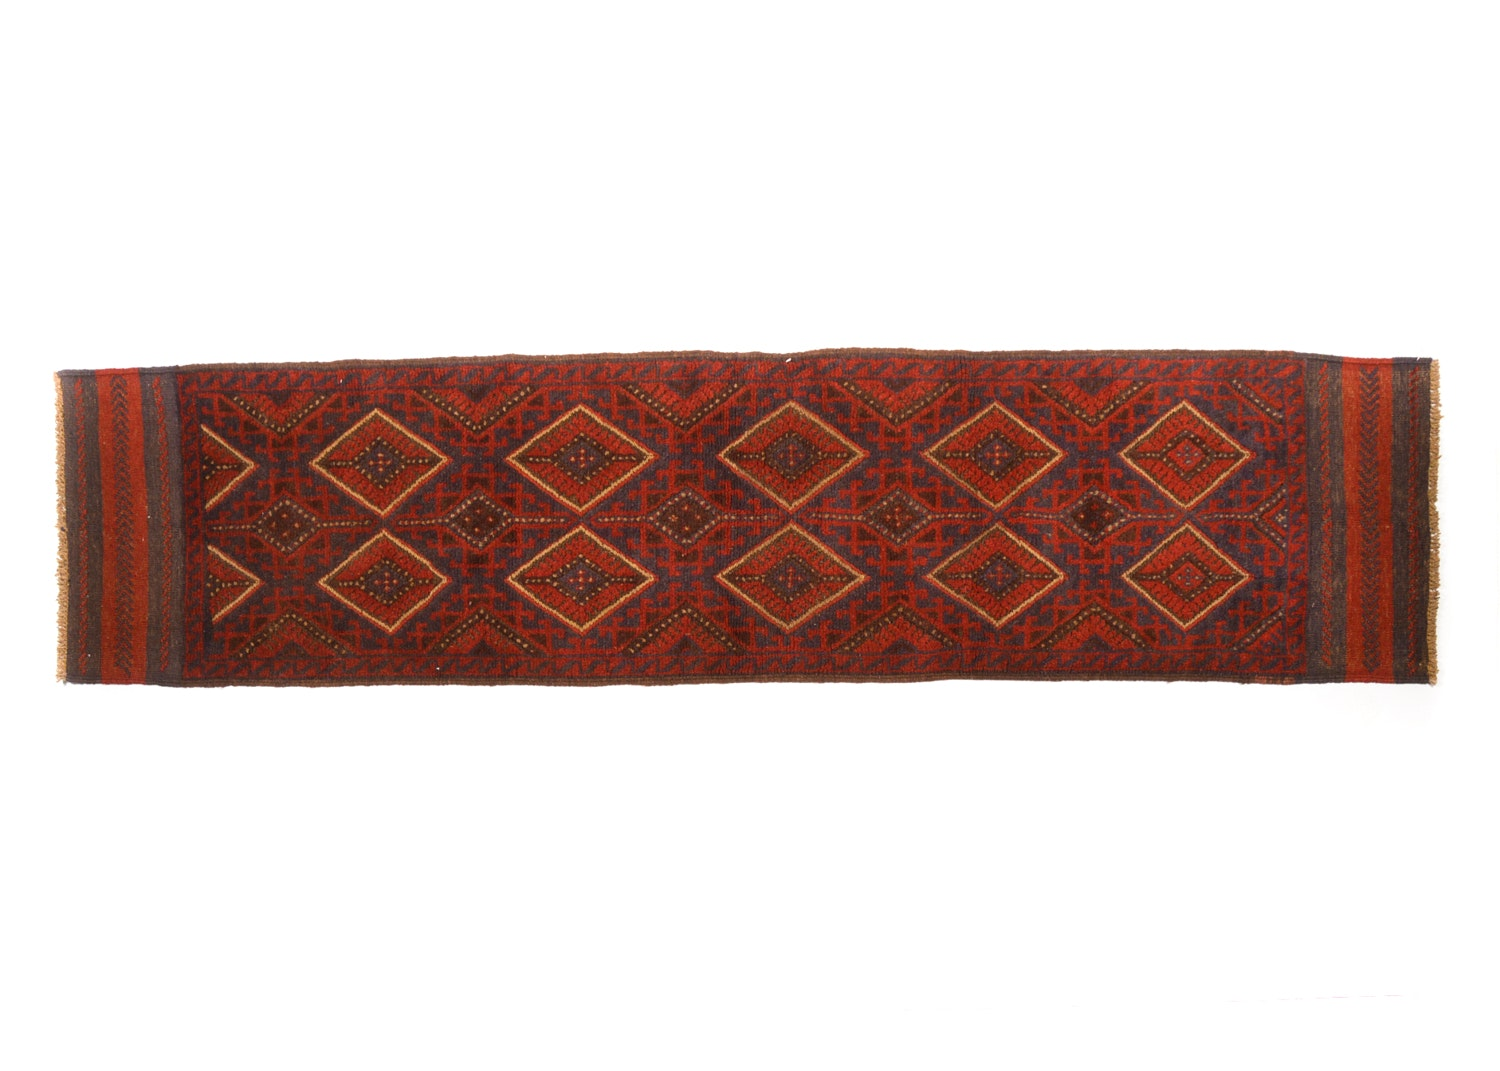 Hand-Knotted and Embroidered Baluch Mashwani Carpet Runner